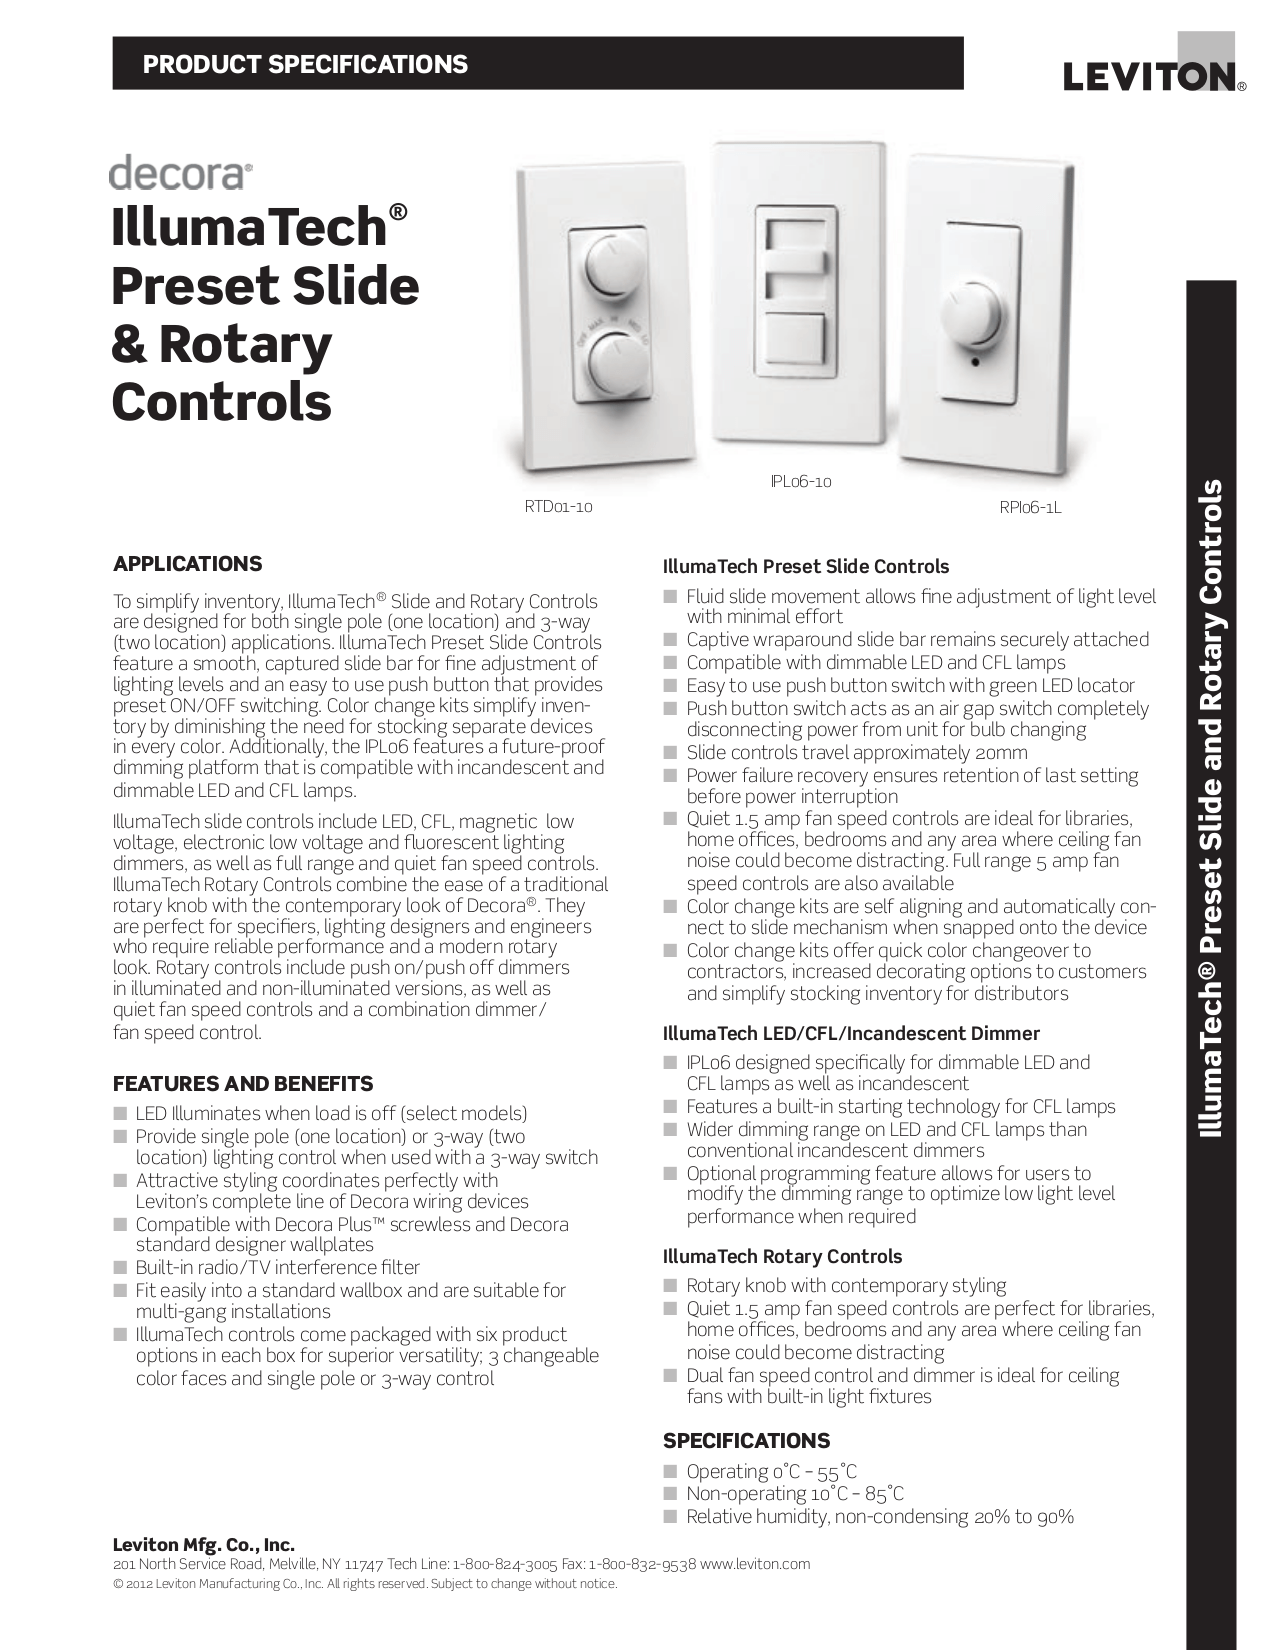 Download free pdf for Leviton Illumatech IPX10-1 Dimmers